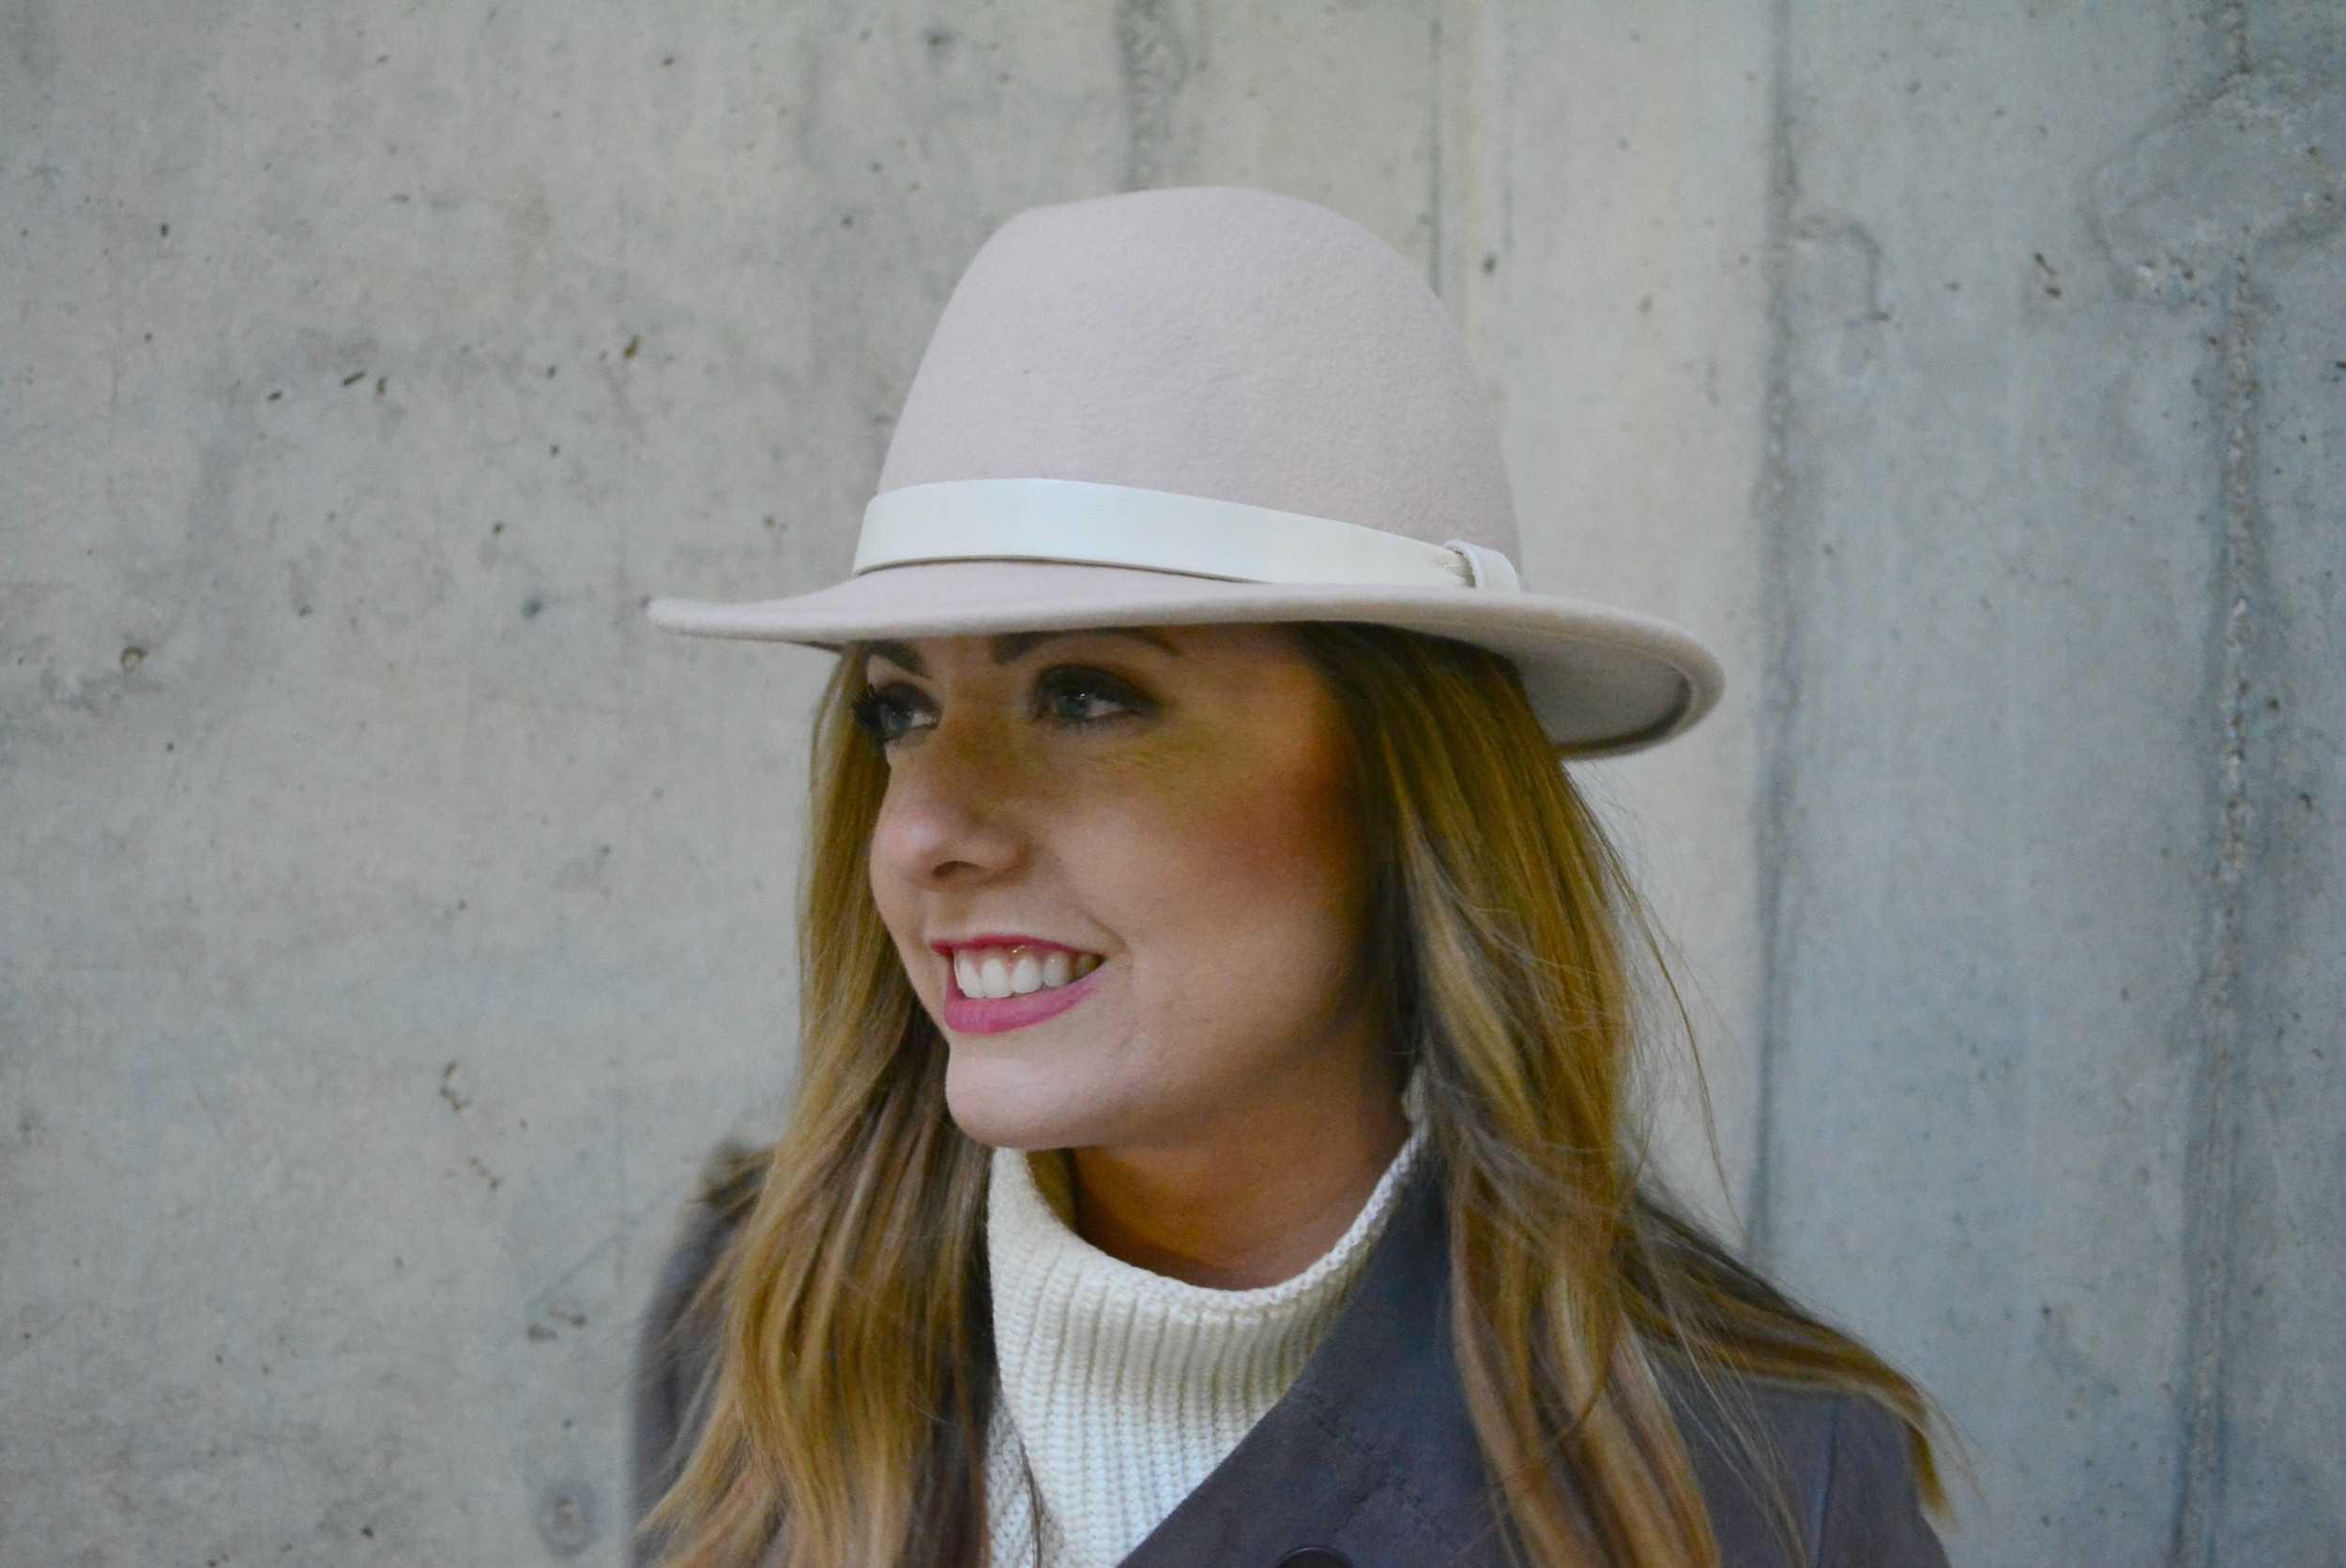 Pink J.Crew hat with soft colors for winter